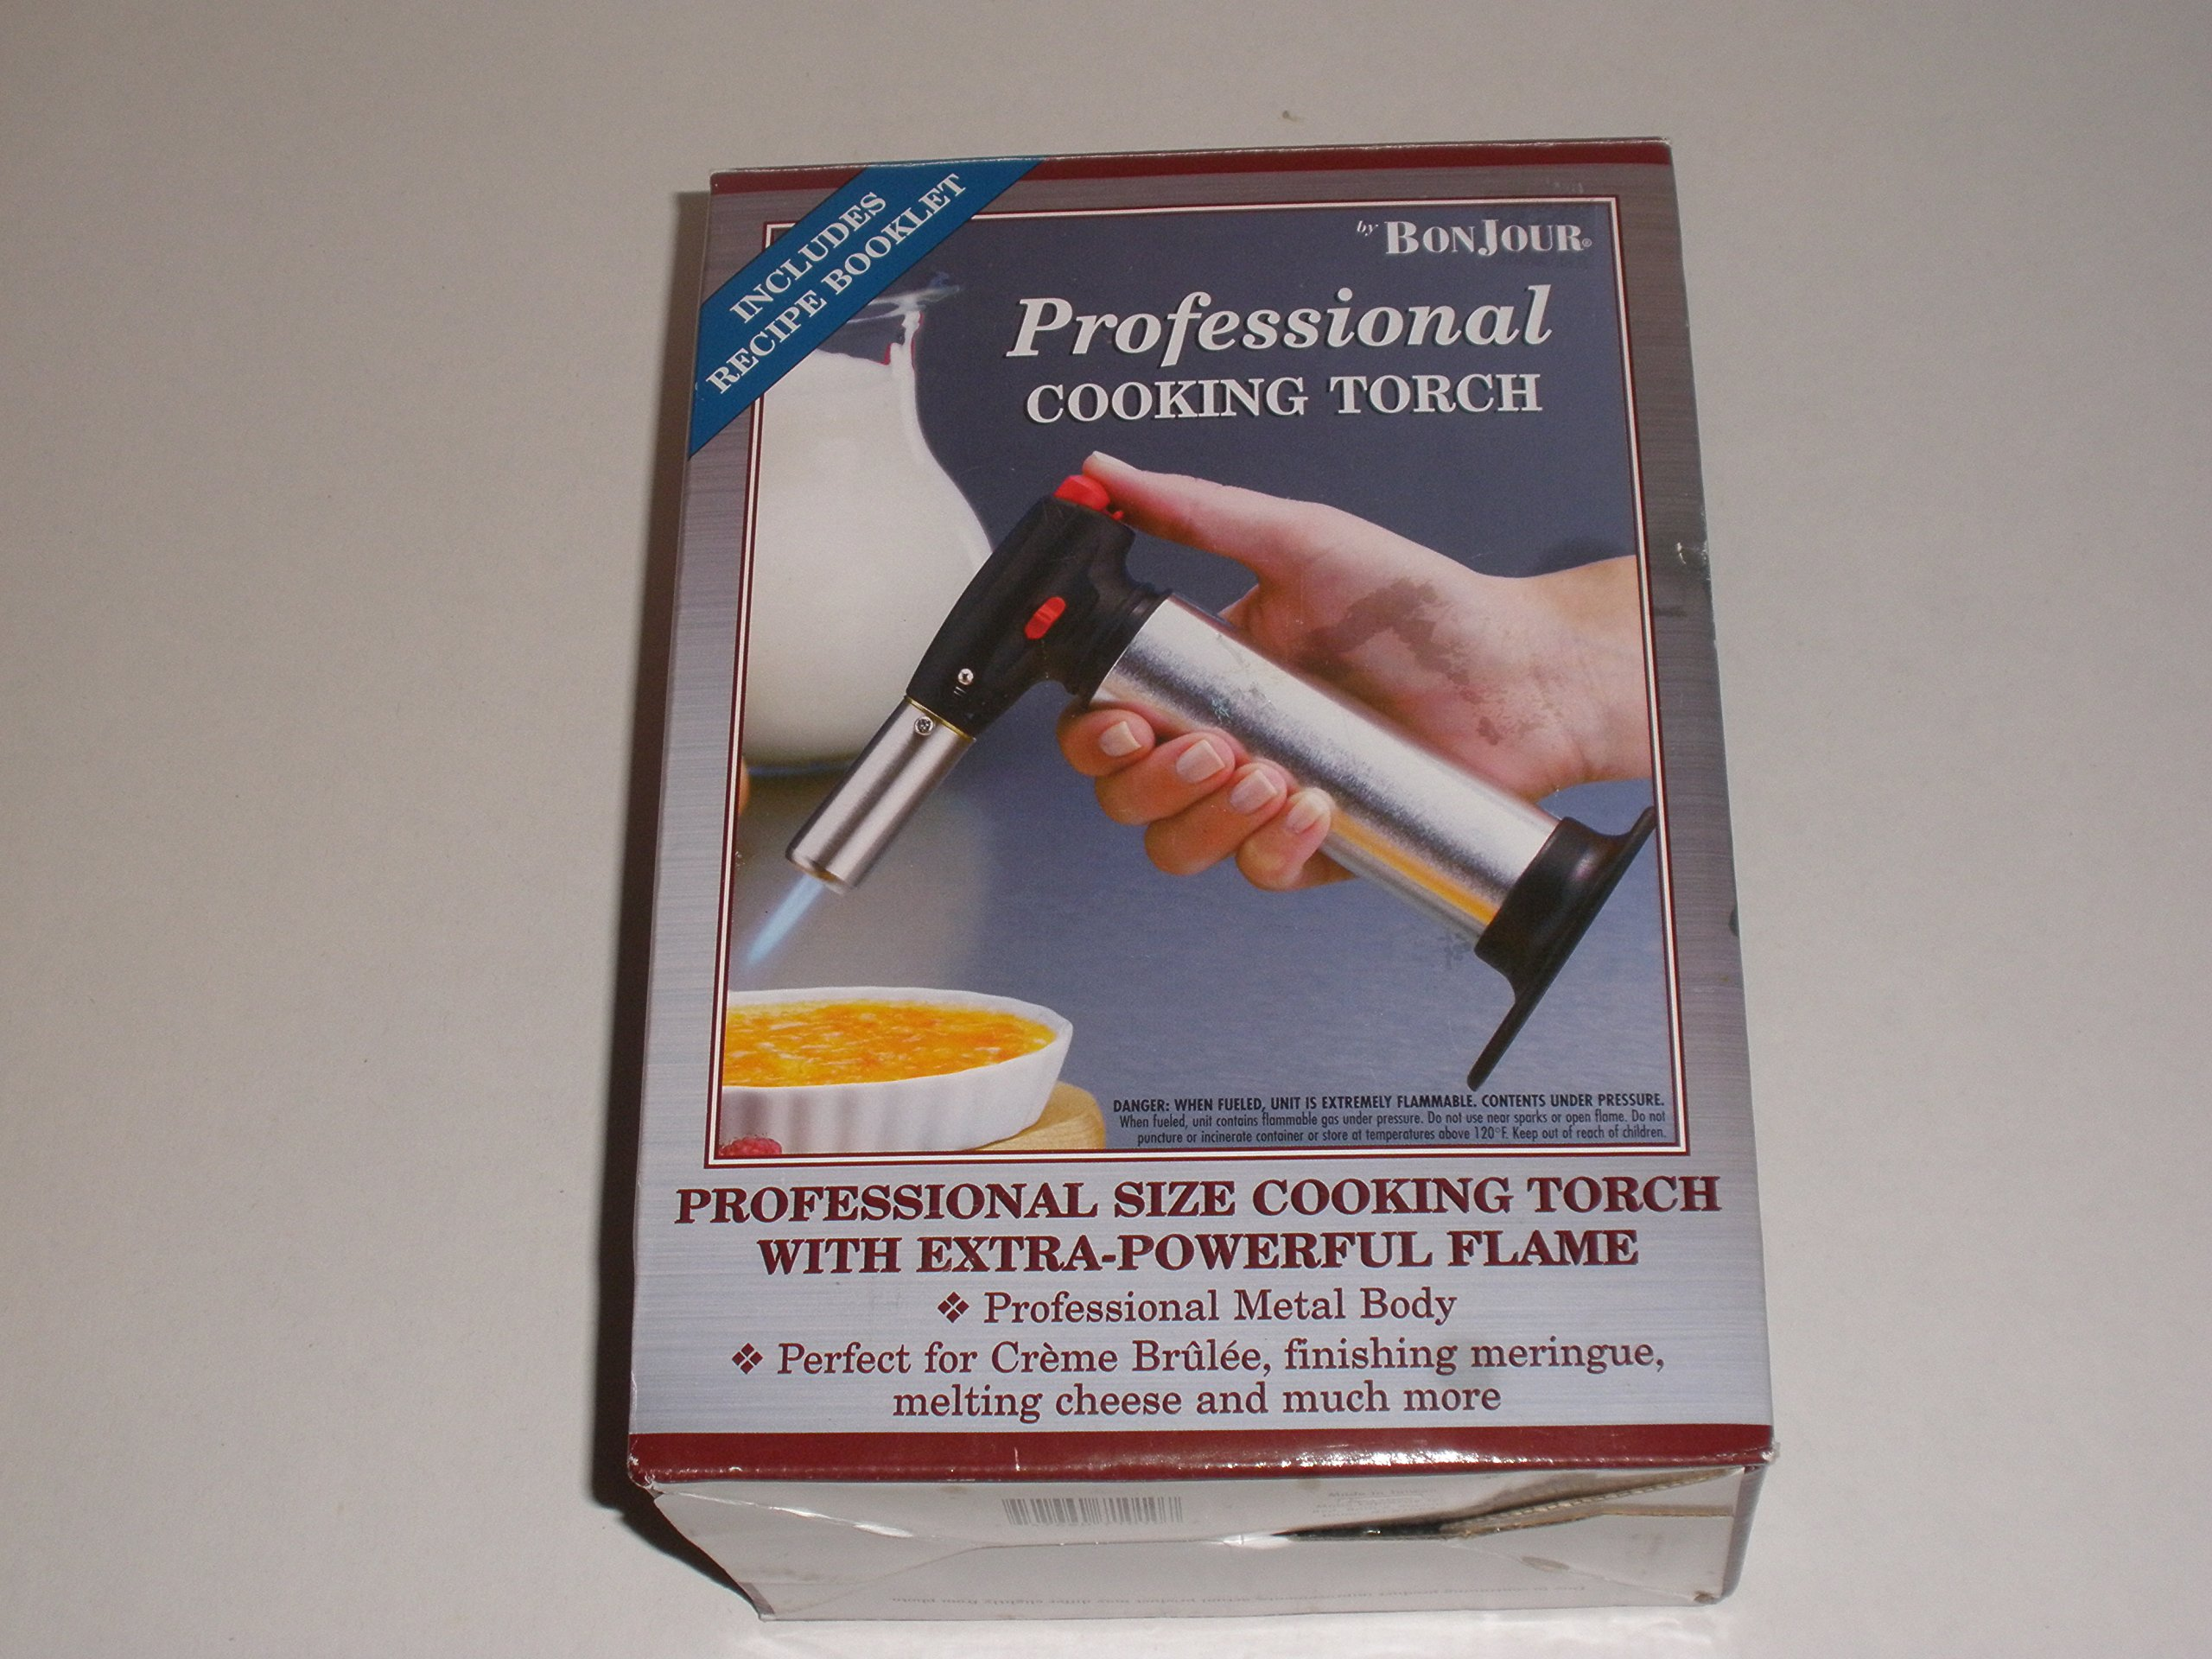 Bonjour Chef's Tools Professional Cooking Torch